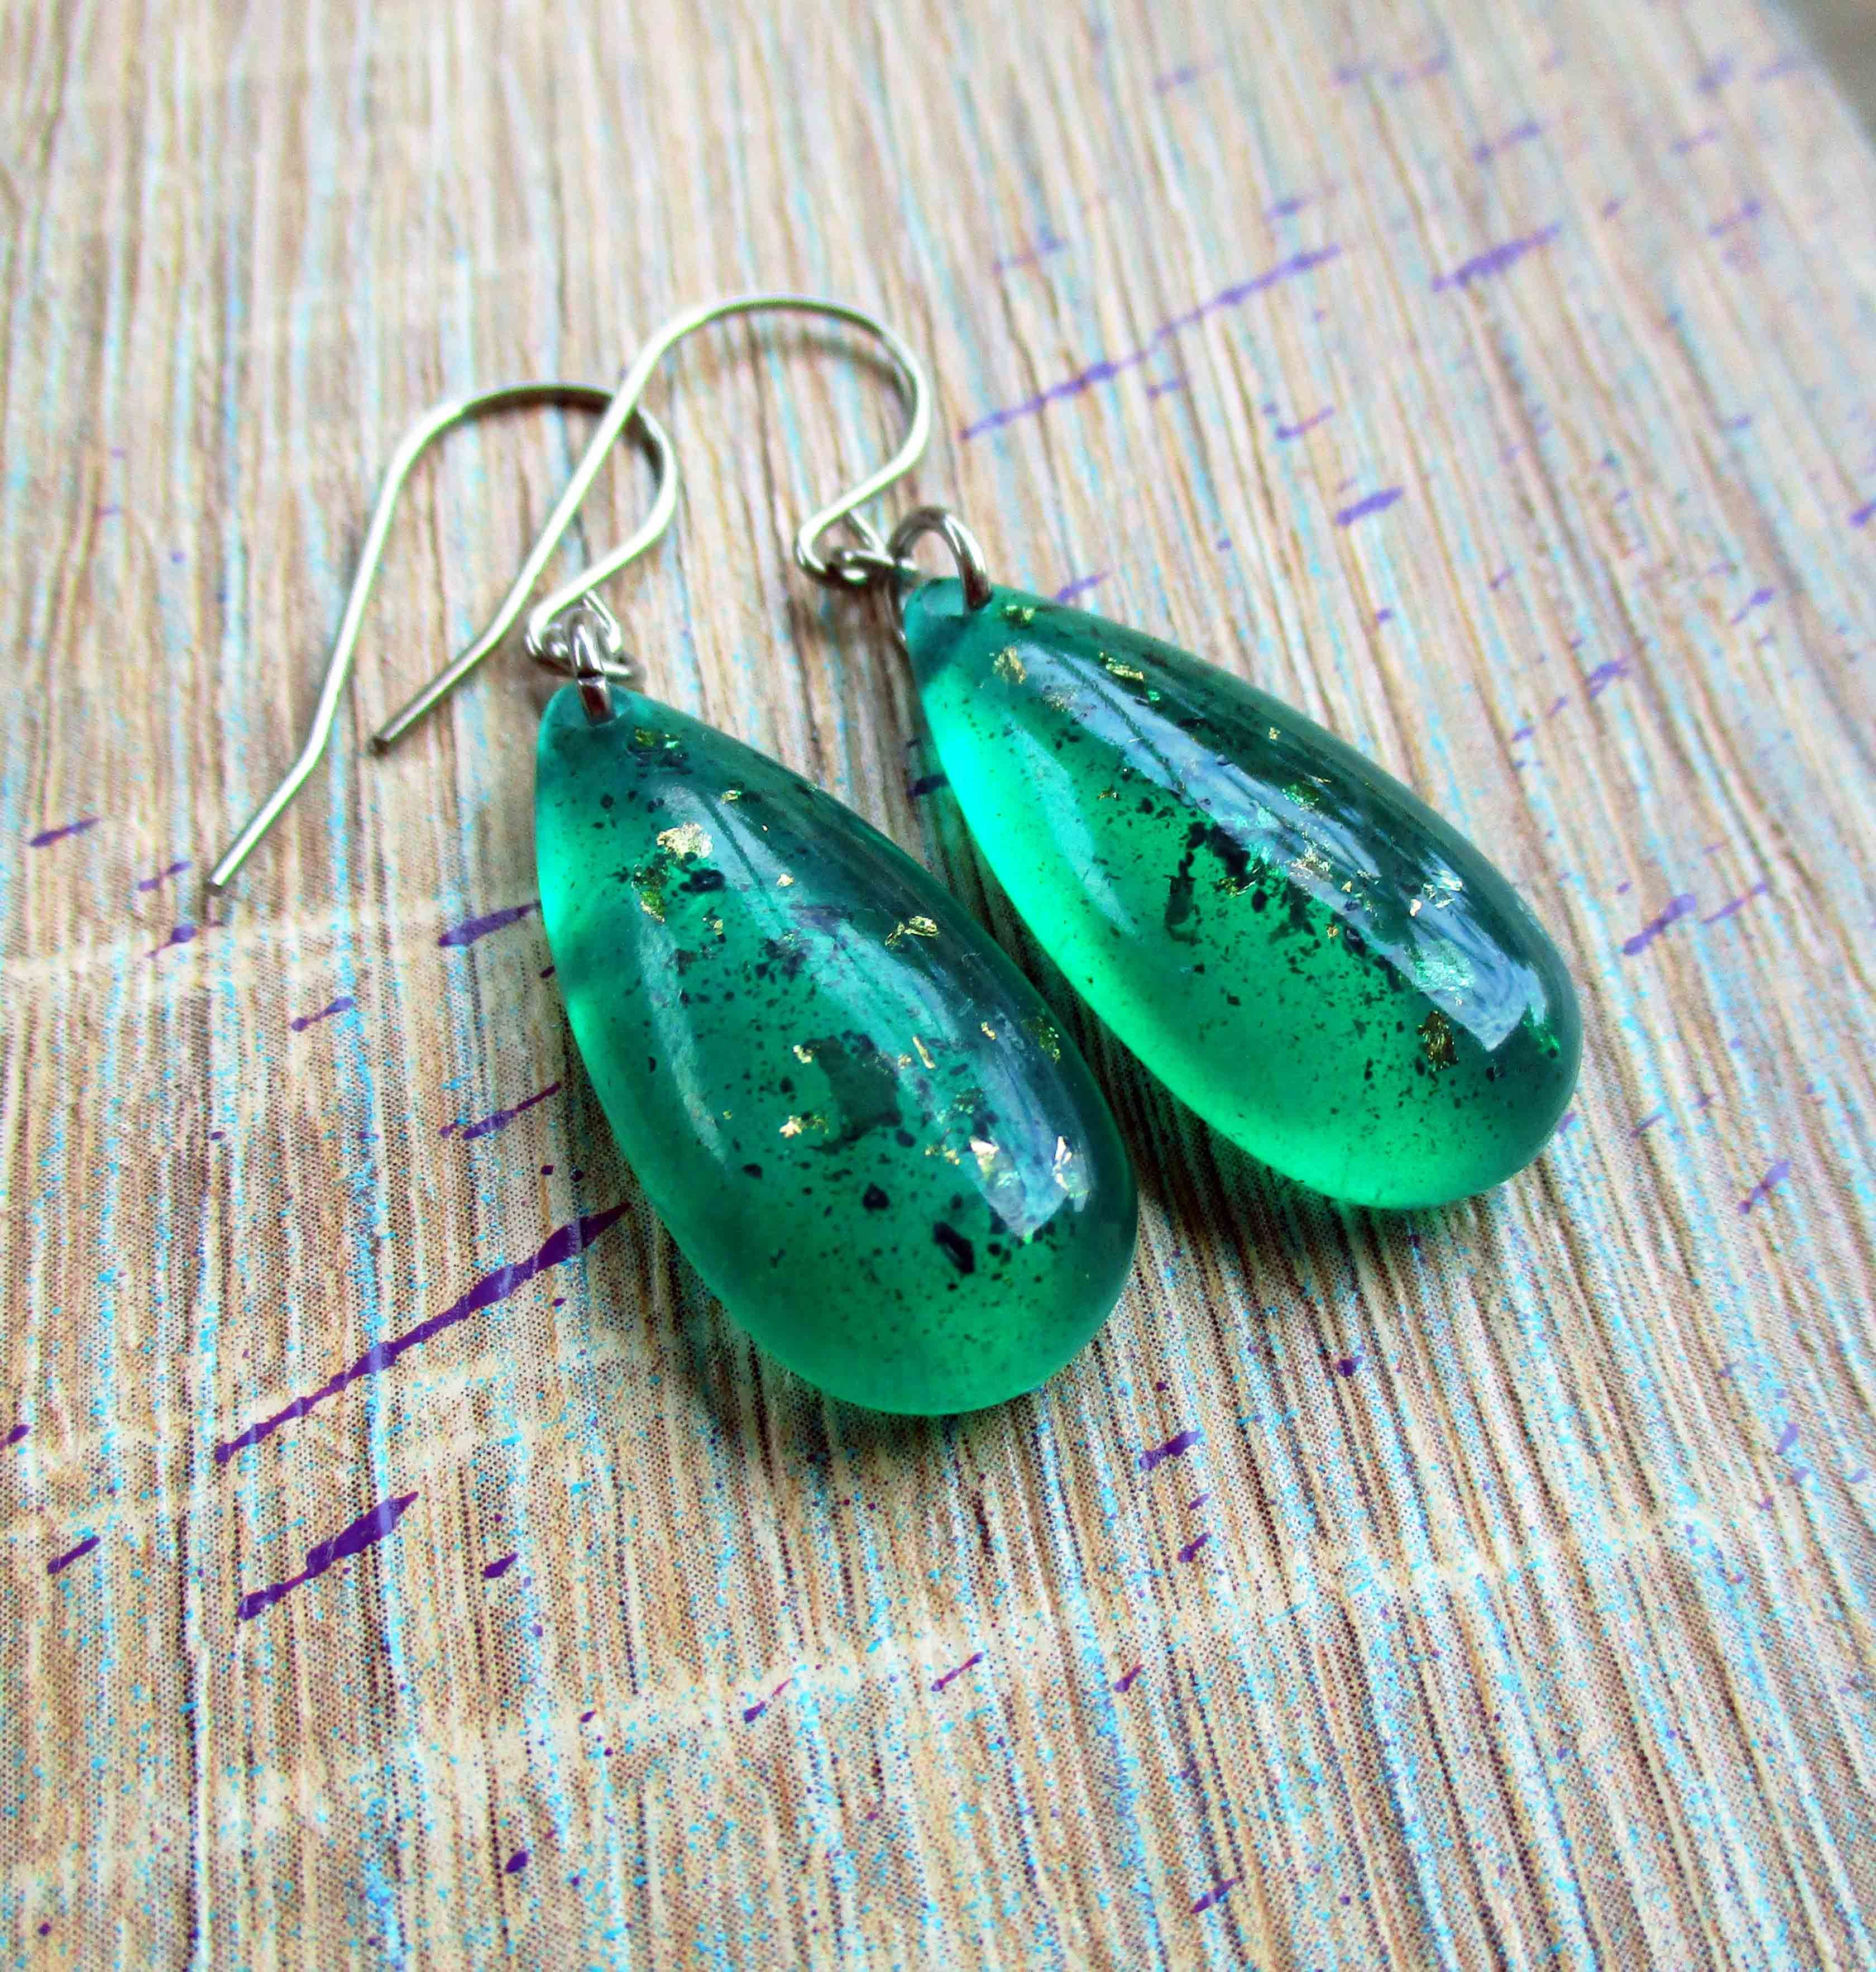 Thea Maris Carmody - Eco resin emerald drop earrings on hypoallergenic surgical stainless steel ear wires $26